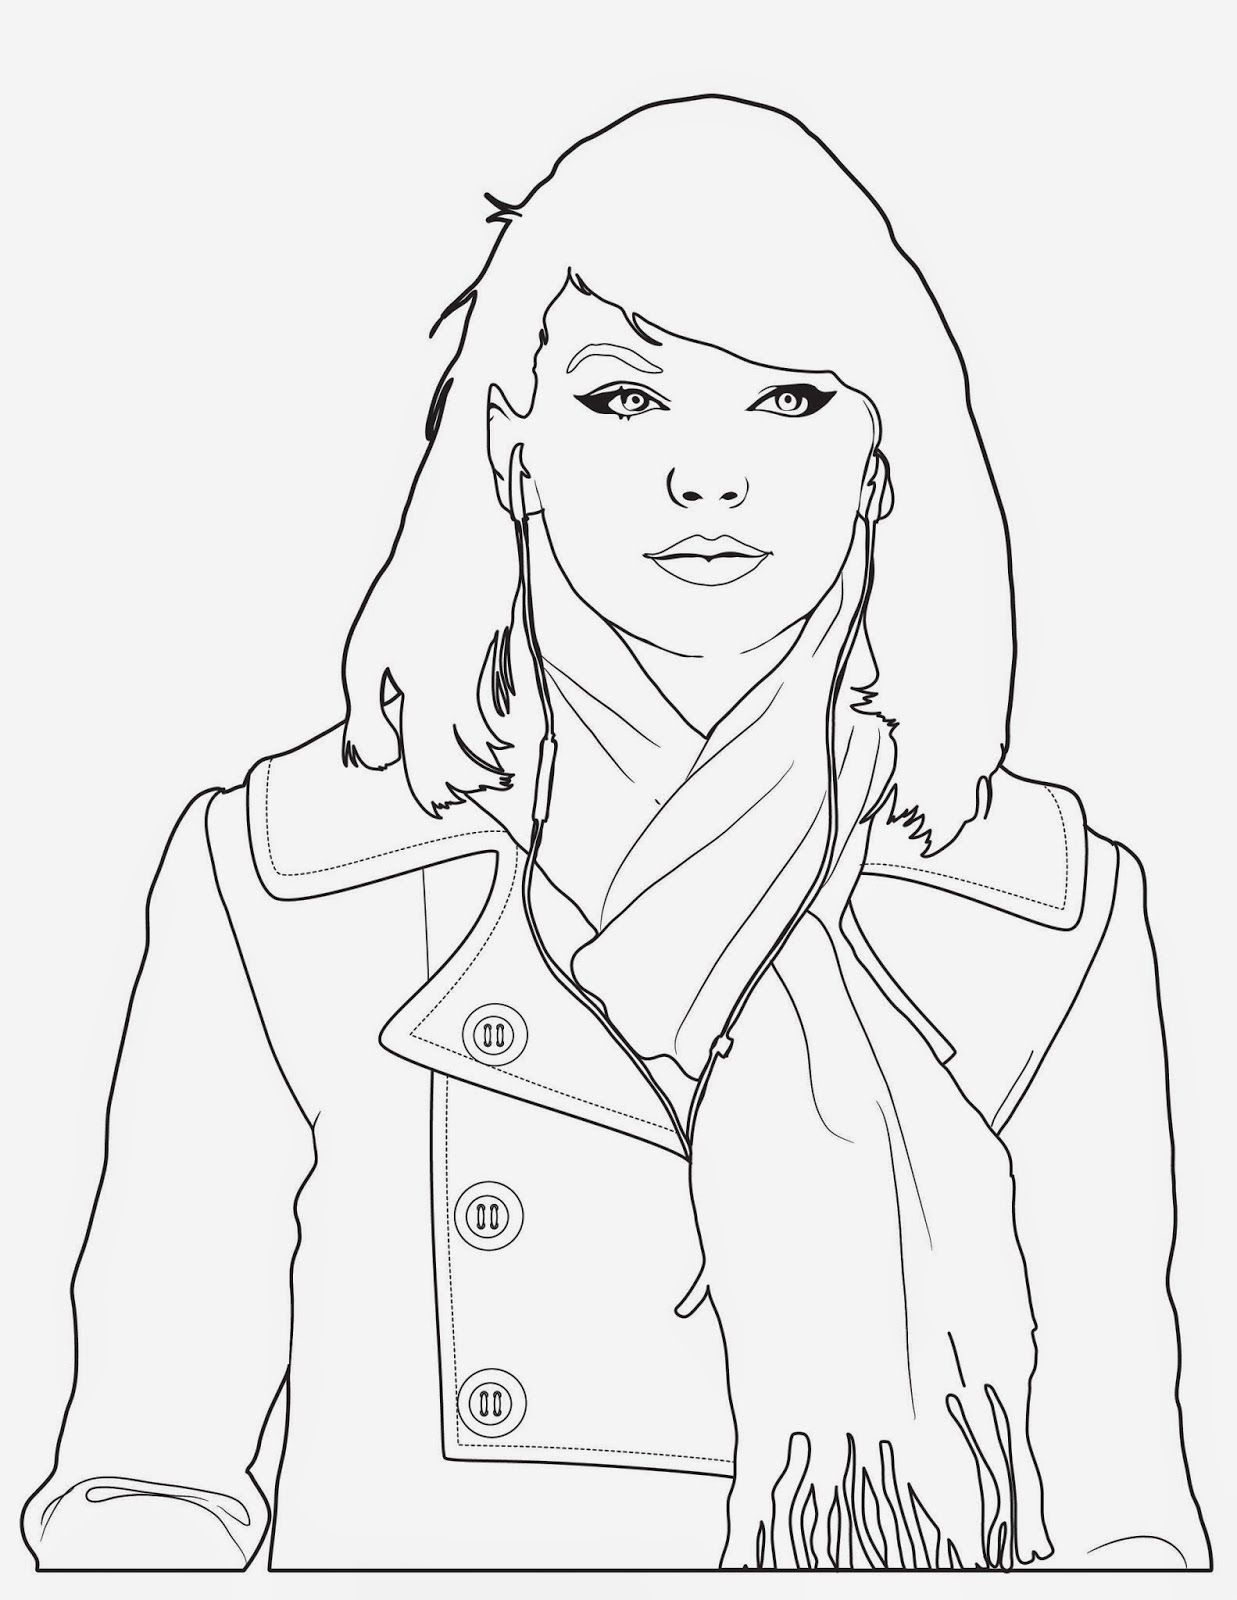 Taylor Swift Coloring Pages To Print | Taylor Swift Black And White